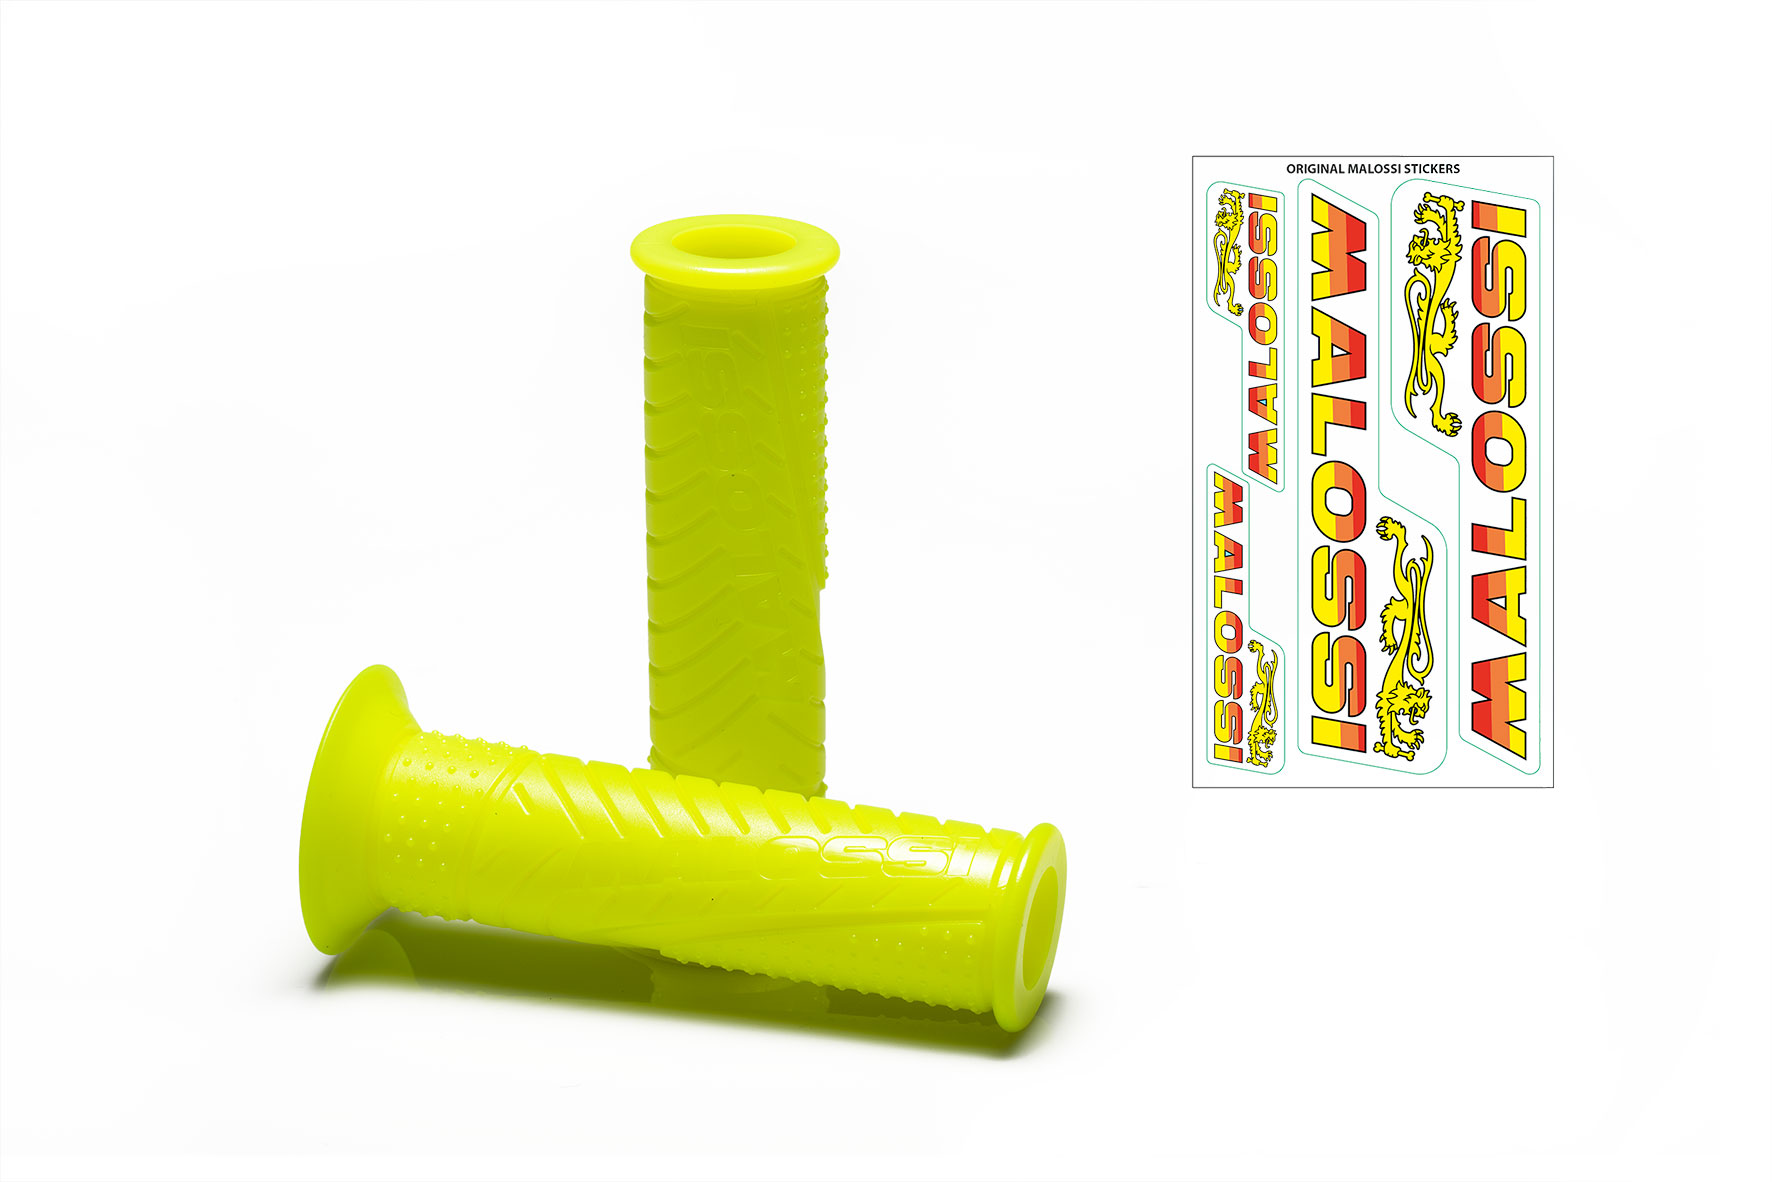 2 MALOSSI MHR FLUO YELLOW GRIPS (mod. without side fastening)